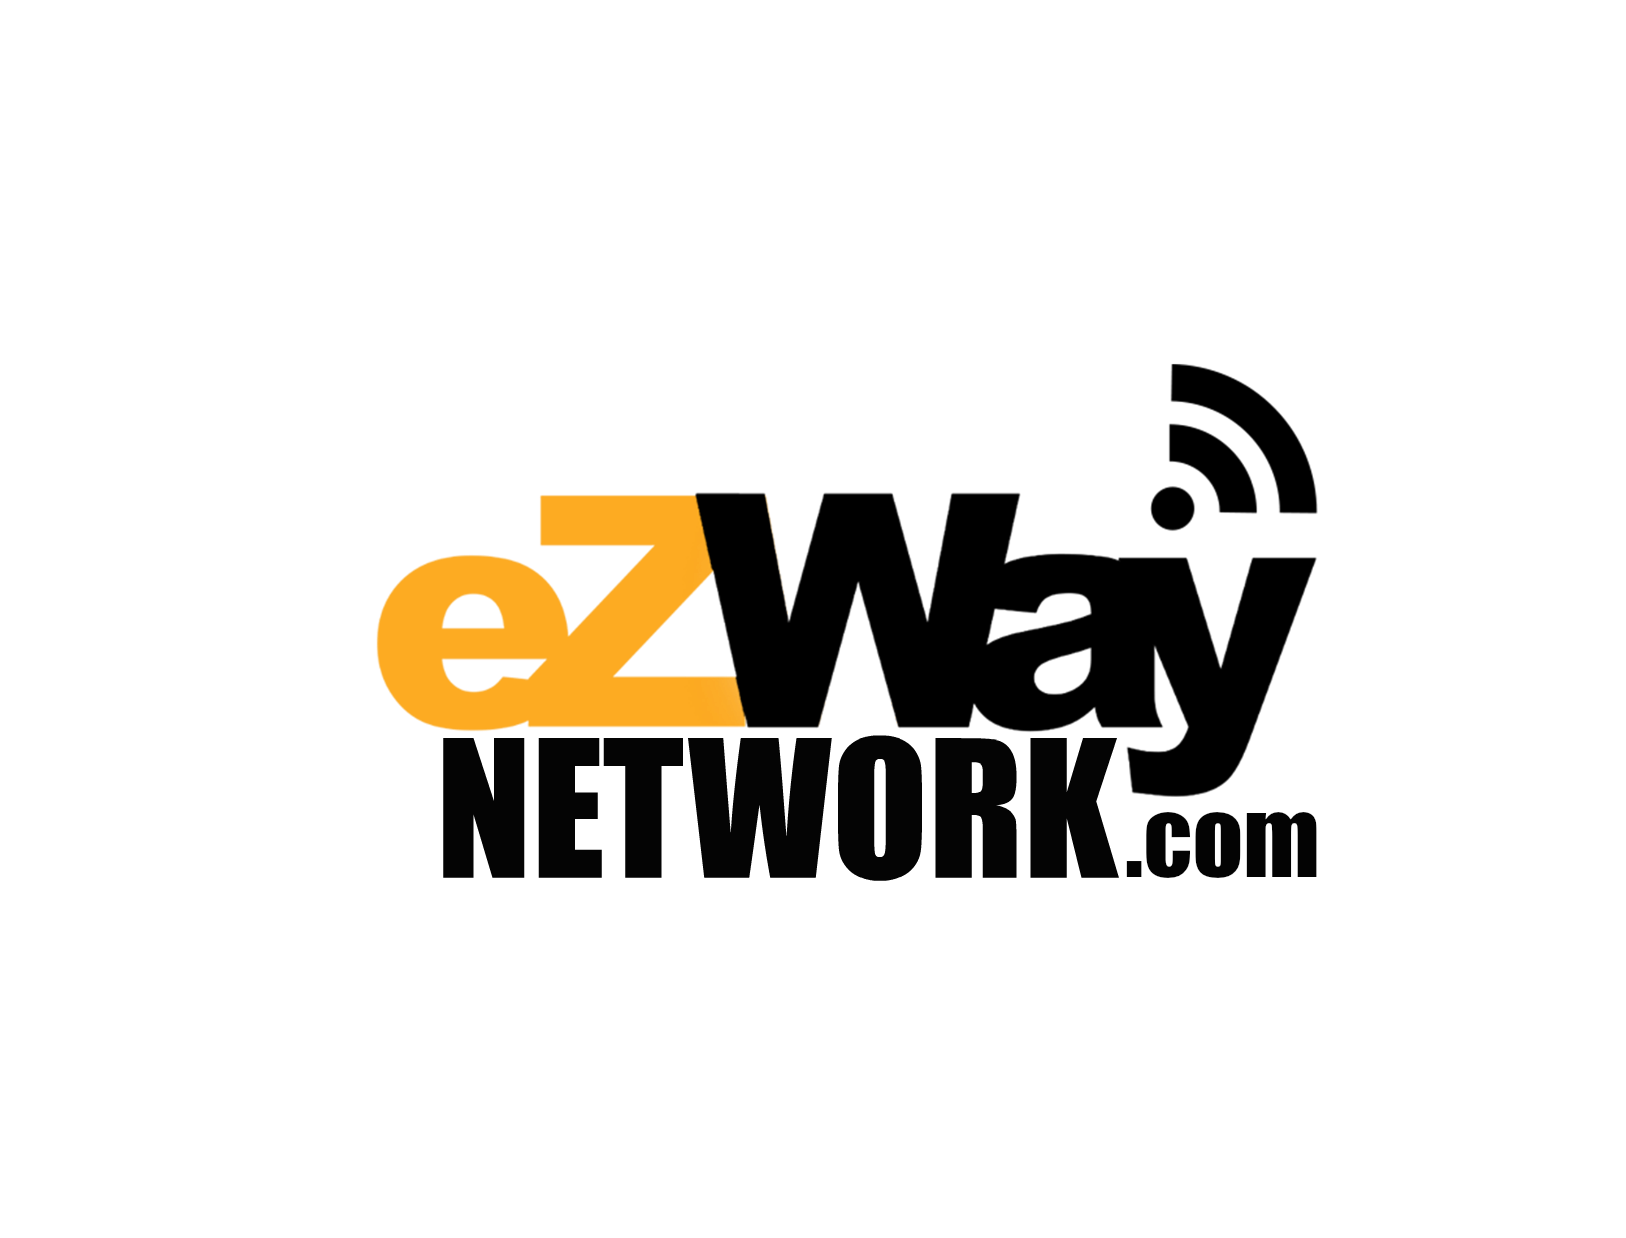 http://worldprosperitynetwork.com/wp-content/uploads/2018/11/eZWayNetworkblack.png